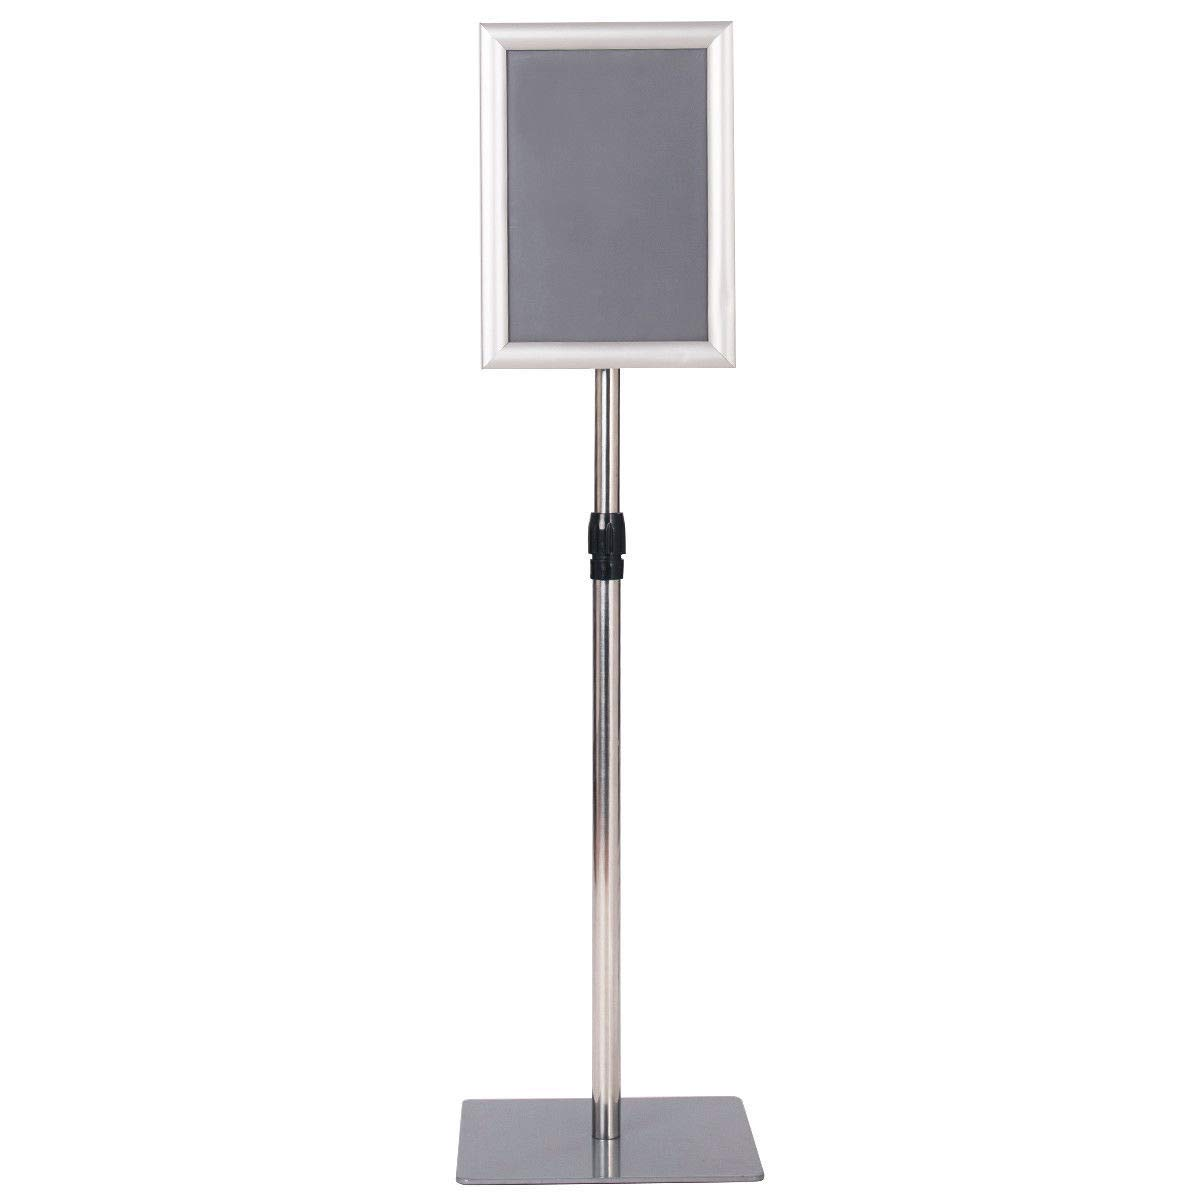 """Sliver 8.5"""" x 11"""" Aluminum Sign Holder Pedestal Poster Stand w/Adjustable Height 29"""" to 47"""" with Ebook"""